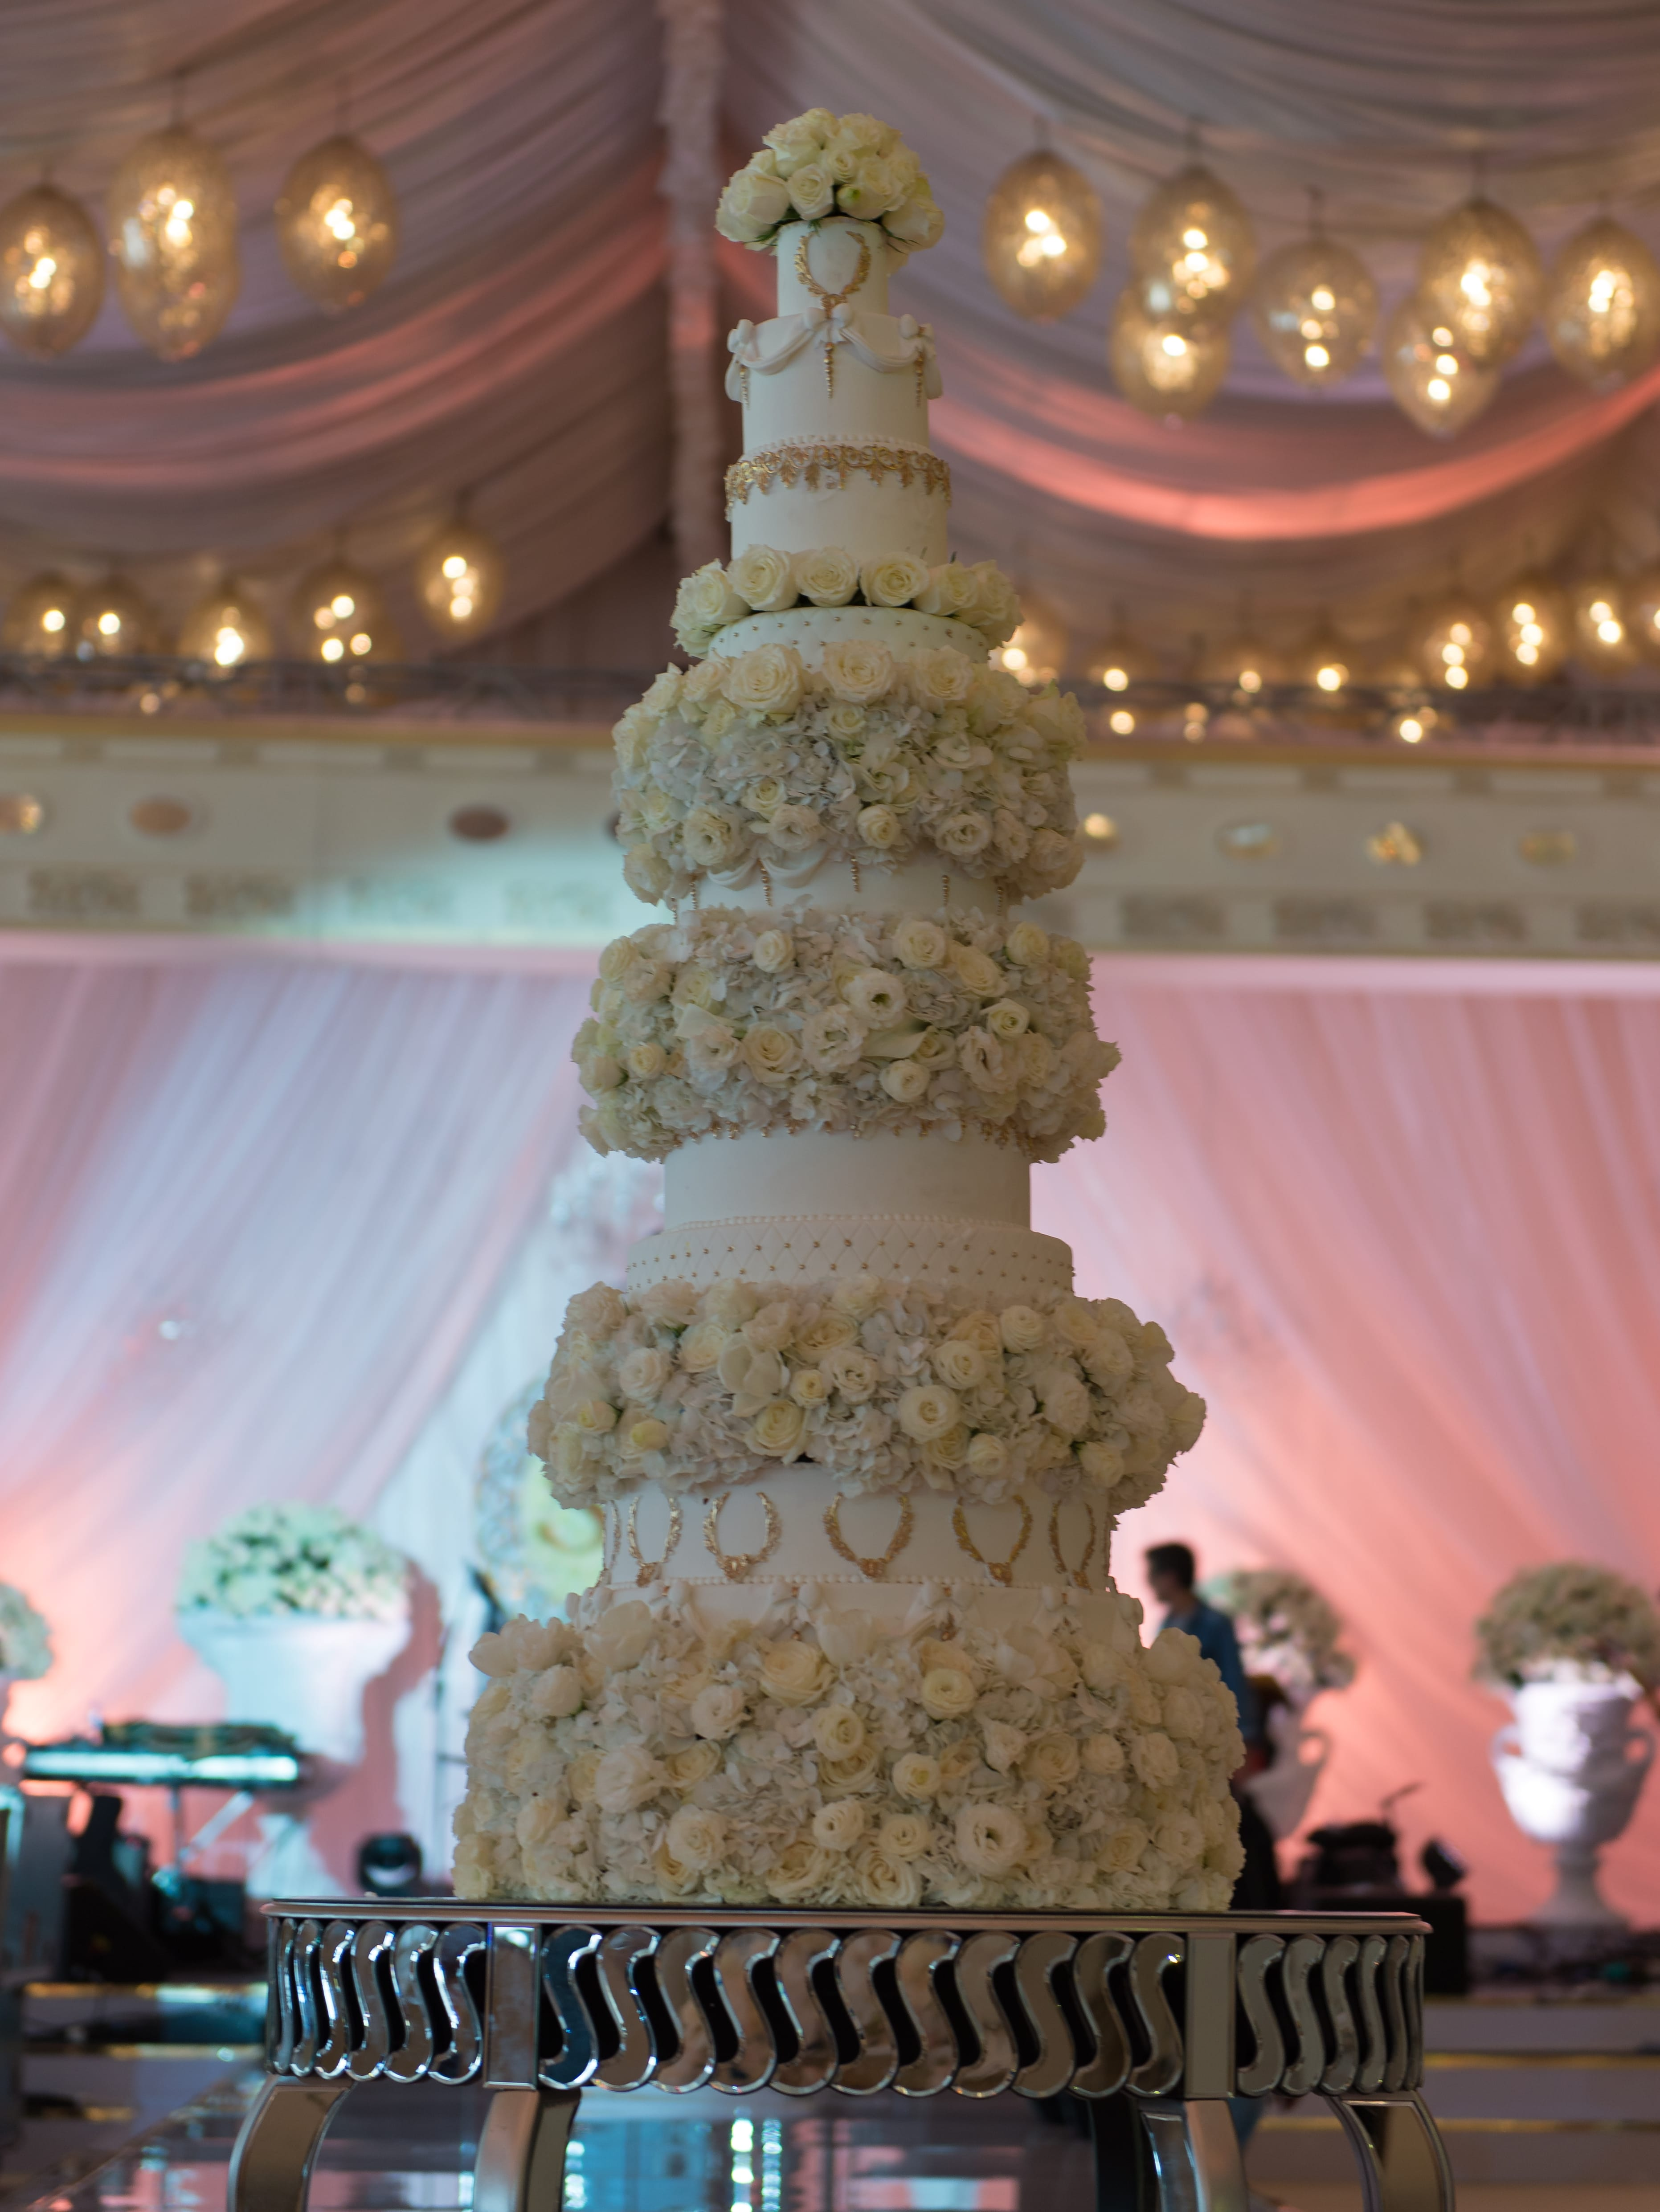 One and half meter tall wedding cake